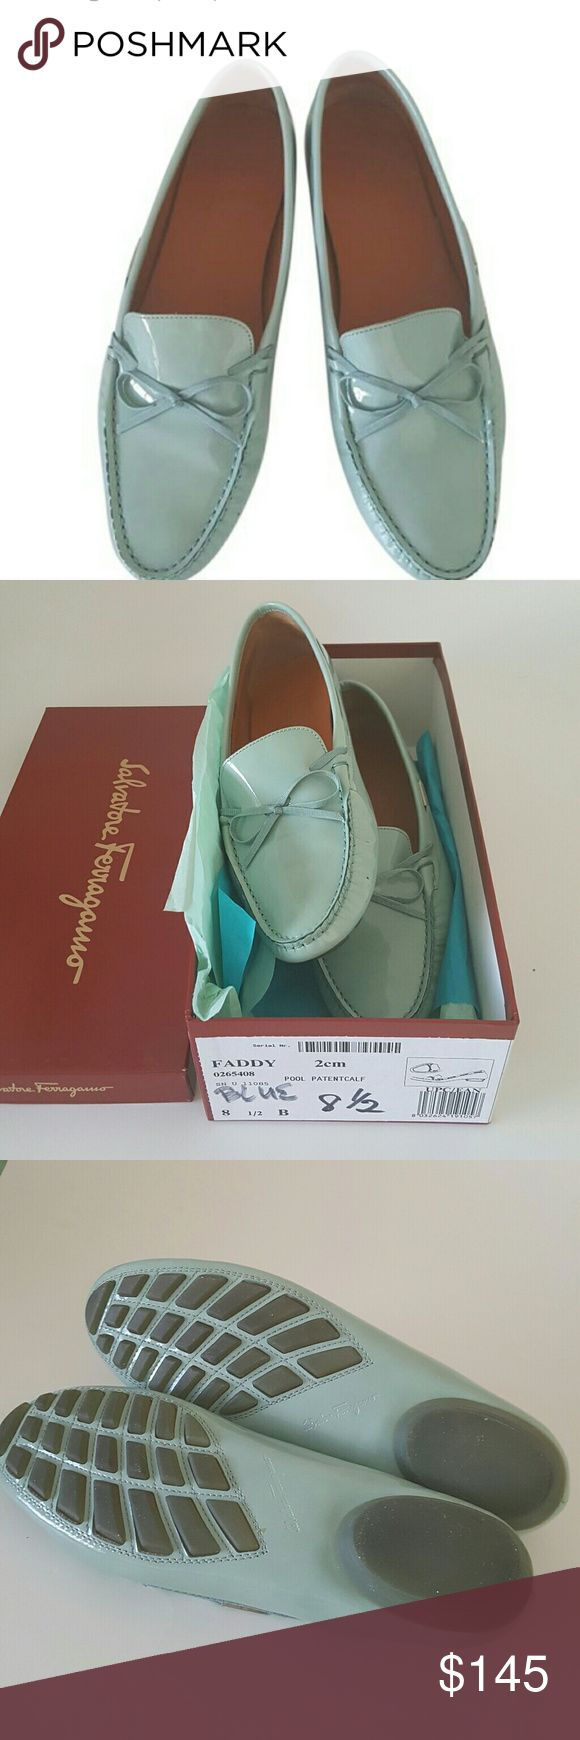 """Salvatore Ferragamo Blue """"Faddy """" Leather Loafers 100% authentic pair of shoes from Salvatore Ferragamo, made in Italy,  Blue patent leather driving loafers flats,  rubber sole,  lining leather, excellent condition only tiny dot on the front  hardly can see , coming with box . They runs through the size. Salvatore Ferragamo Shoes Flats & Loafers"""